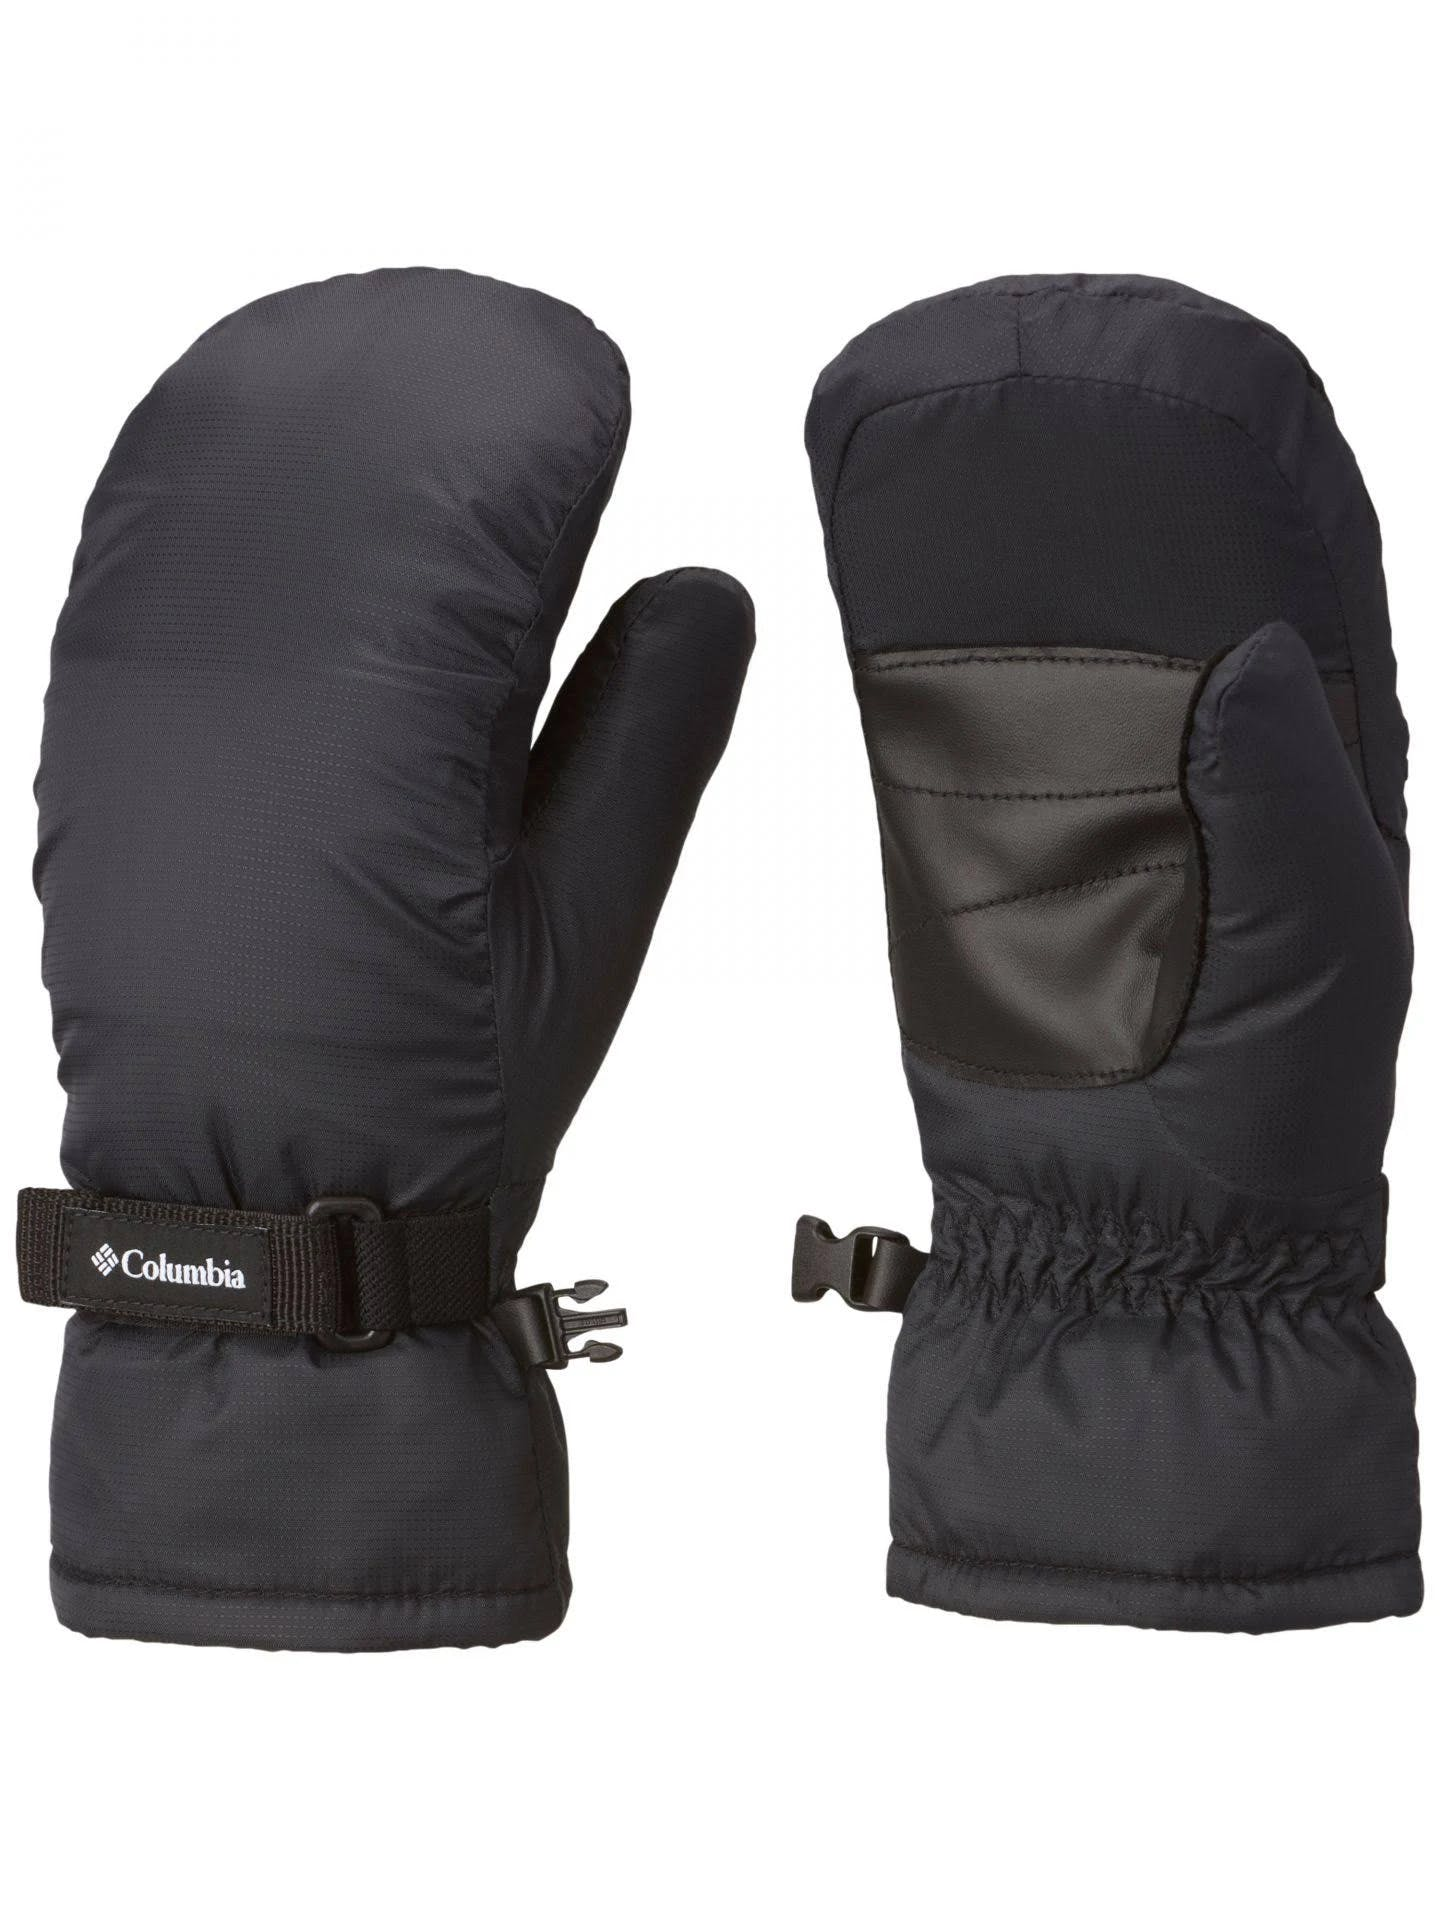 Columbia Youth Core Mitten Large Black